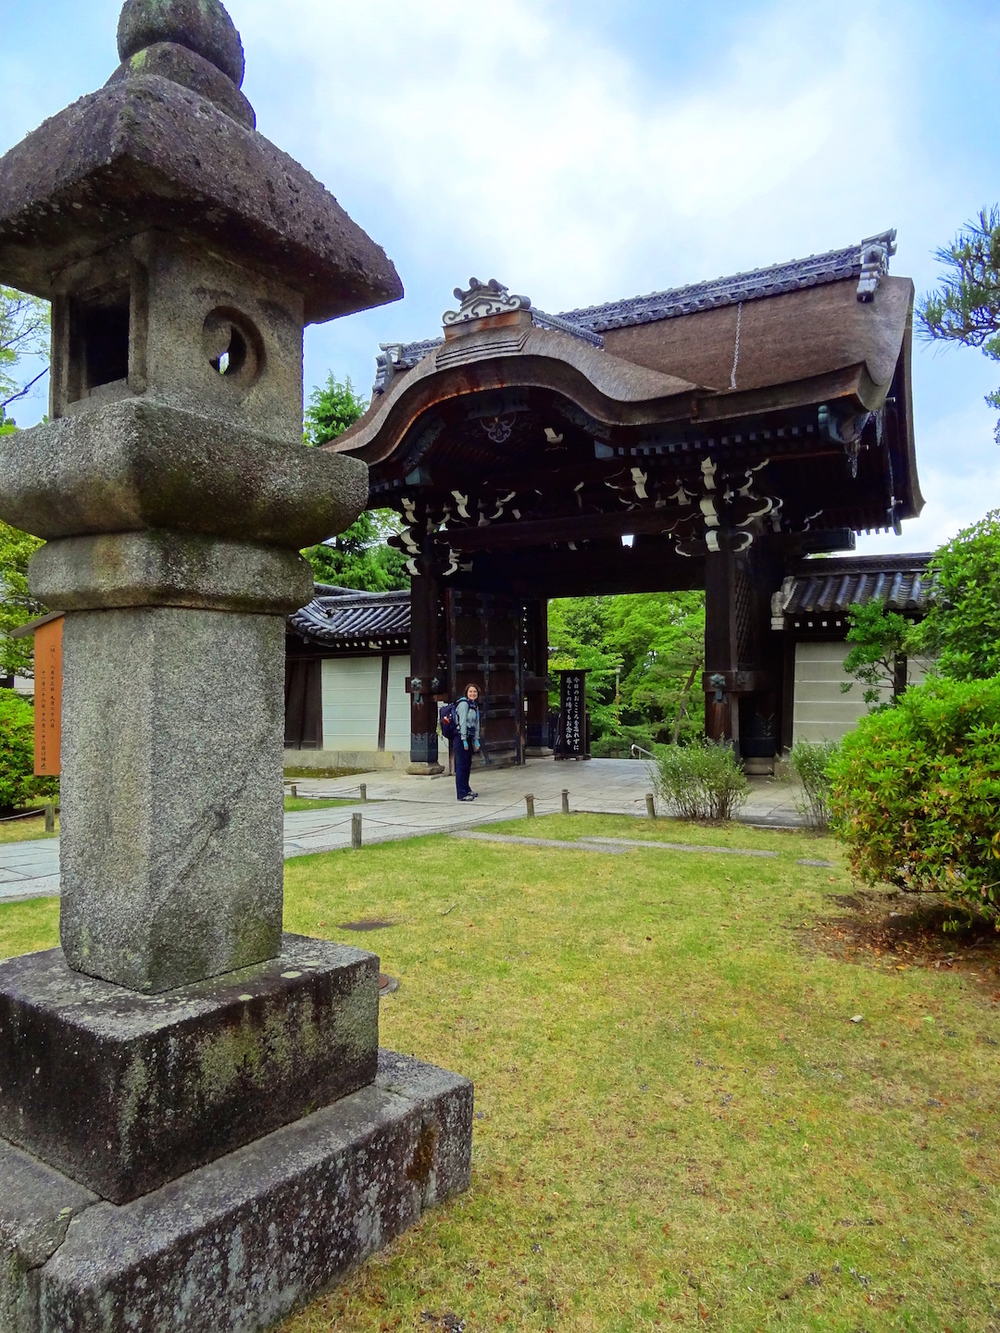 P2 Japan Wk1 stone monument small.jpeg